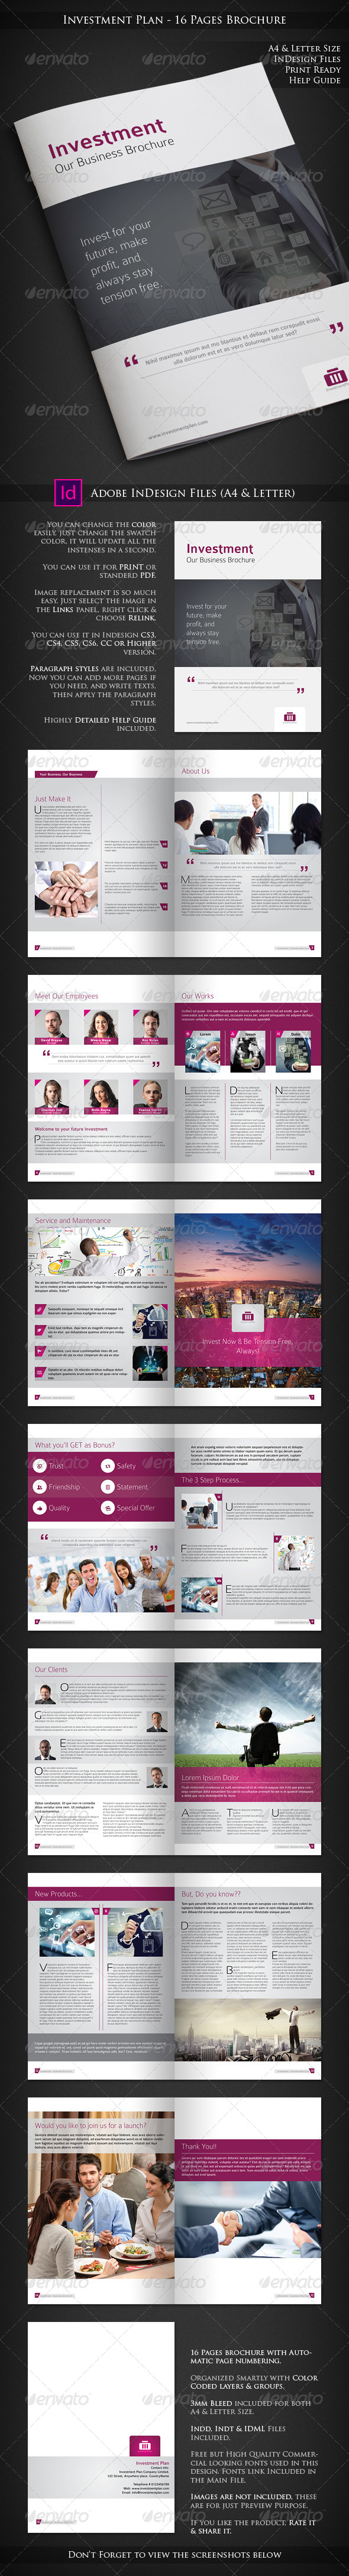 GraphicRiver Investment Plan 16 Pages Business Brochure 6603457